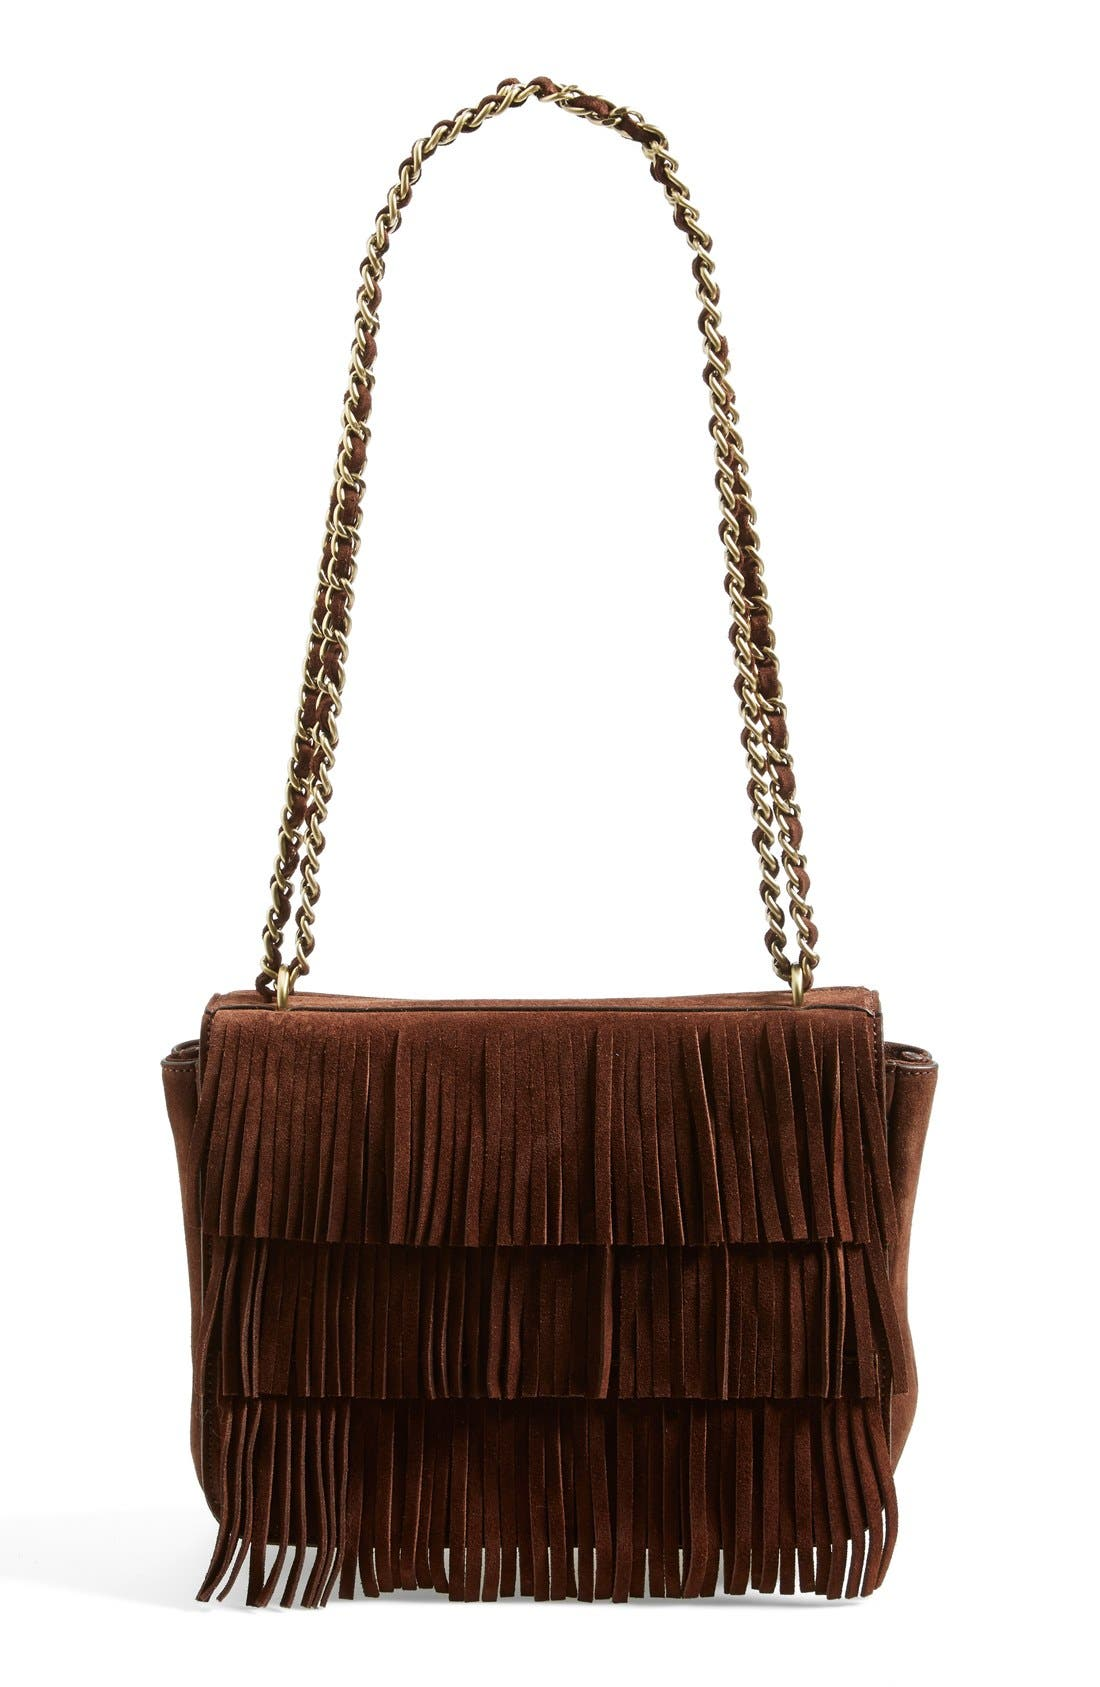 TORY BURCH,                             Fringe Shoulder Bag,                             Alternate thumbnail 2, color,                             201